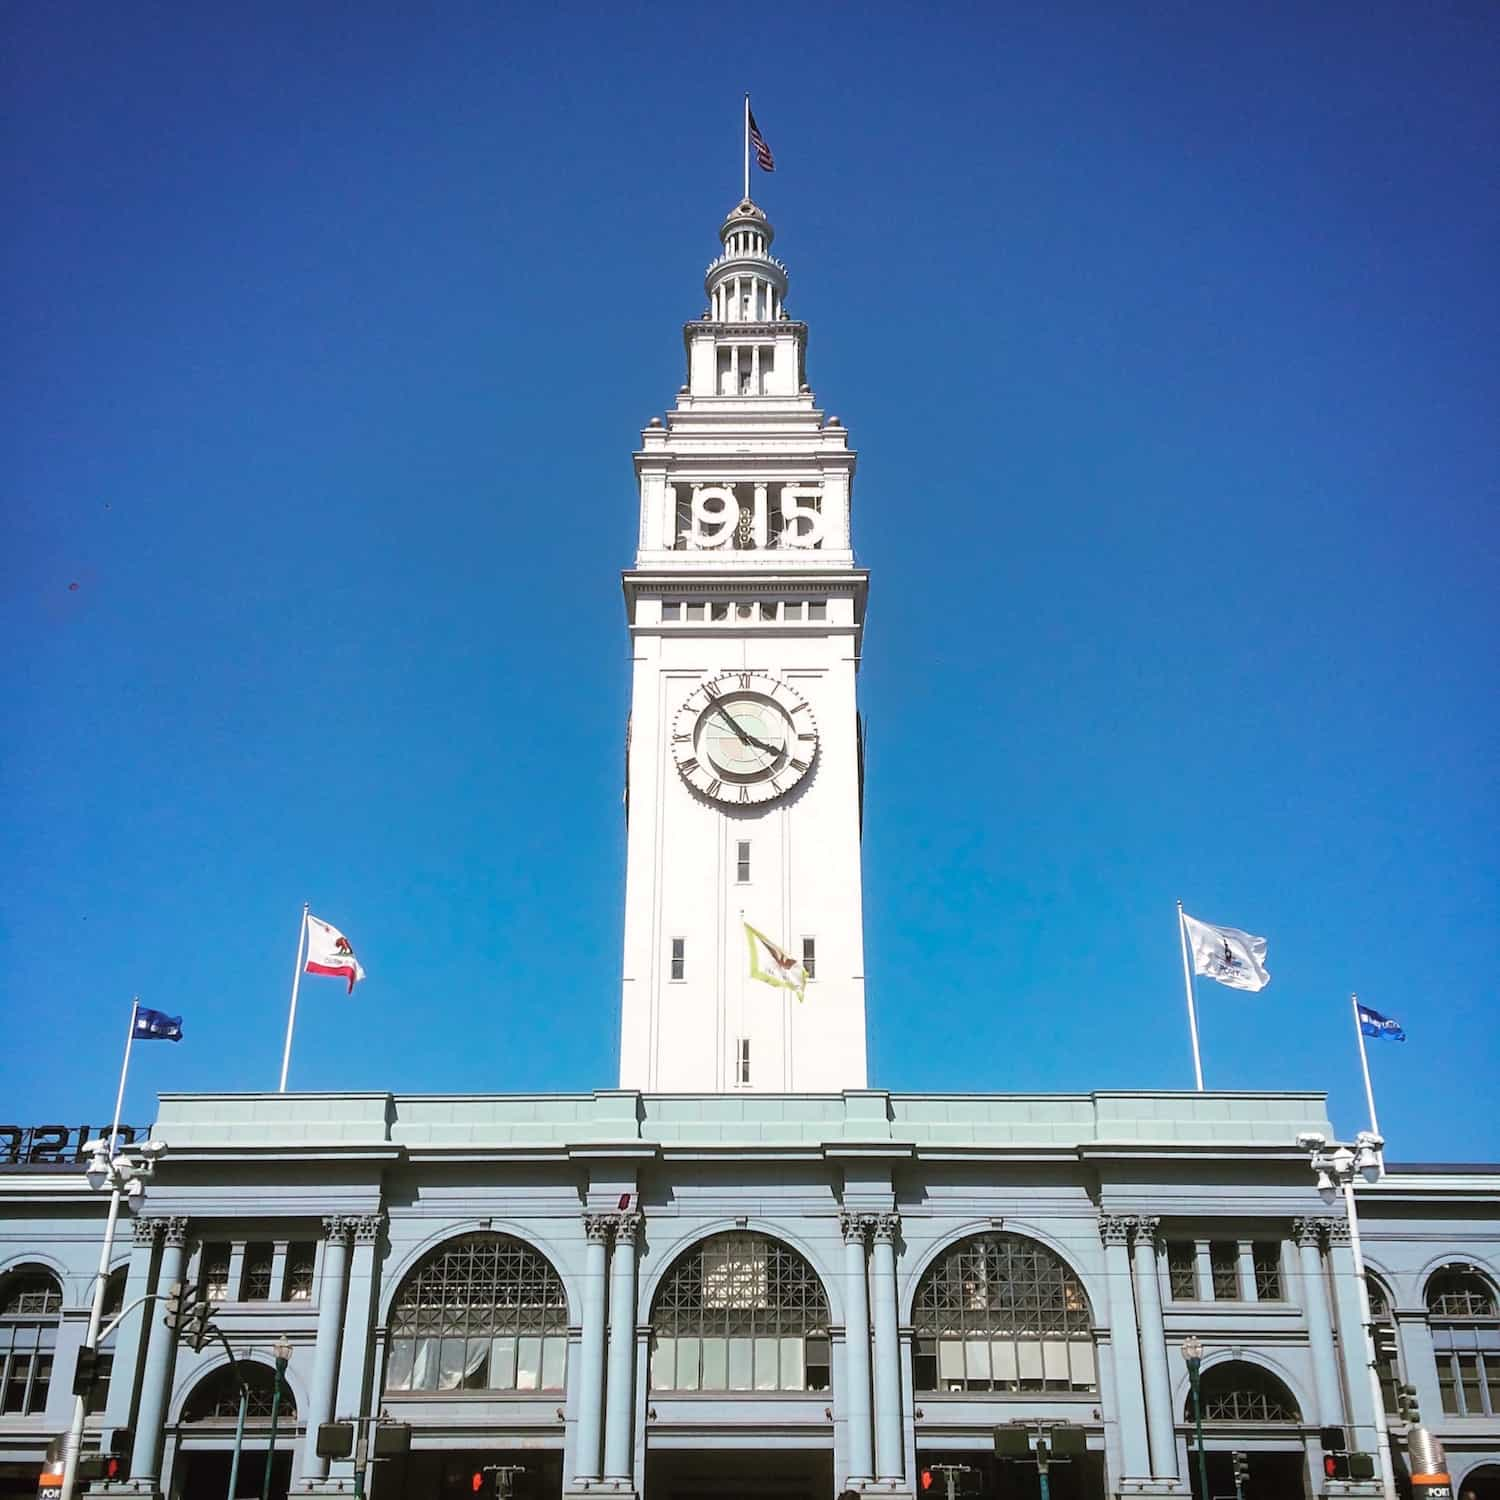 3 Days in San Francisco - Ferry Building